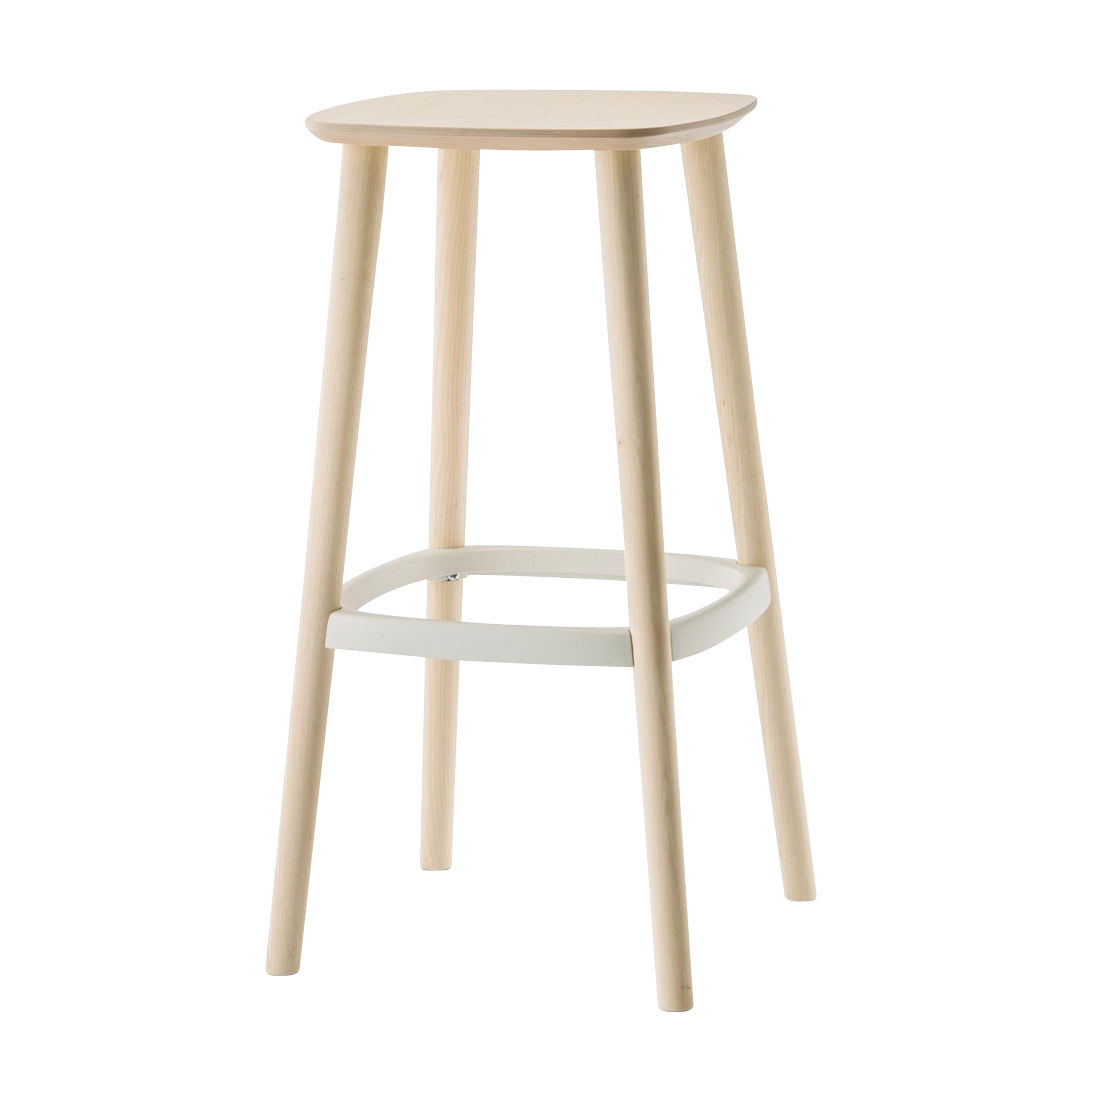 Babila 2702 Bar Stool Pedrali AmbienteDirectcom